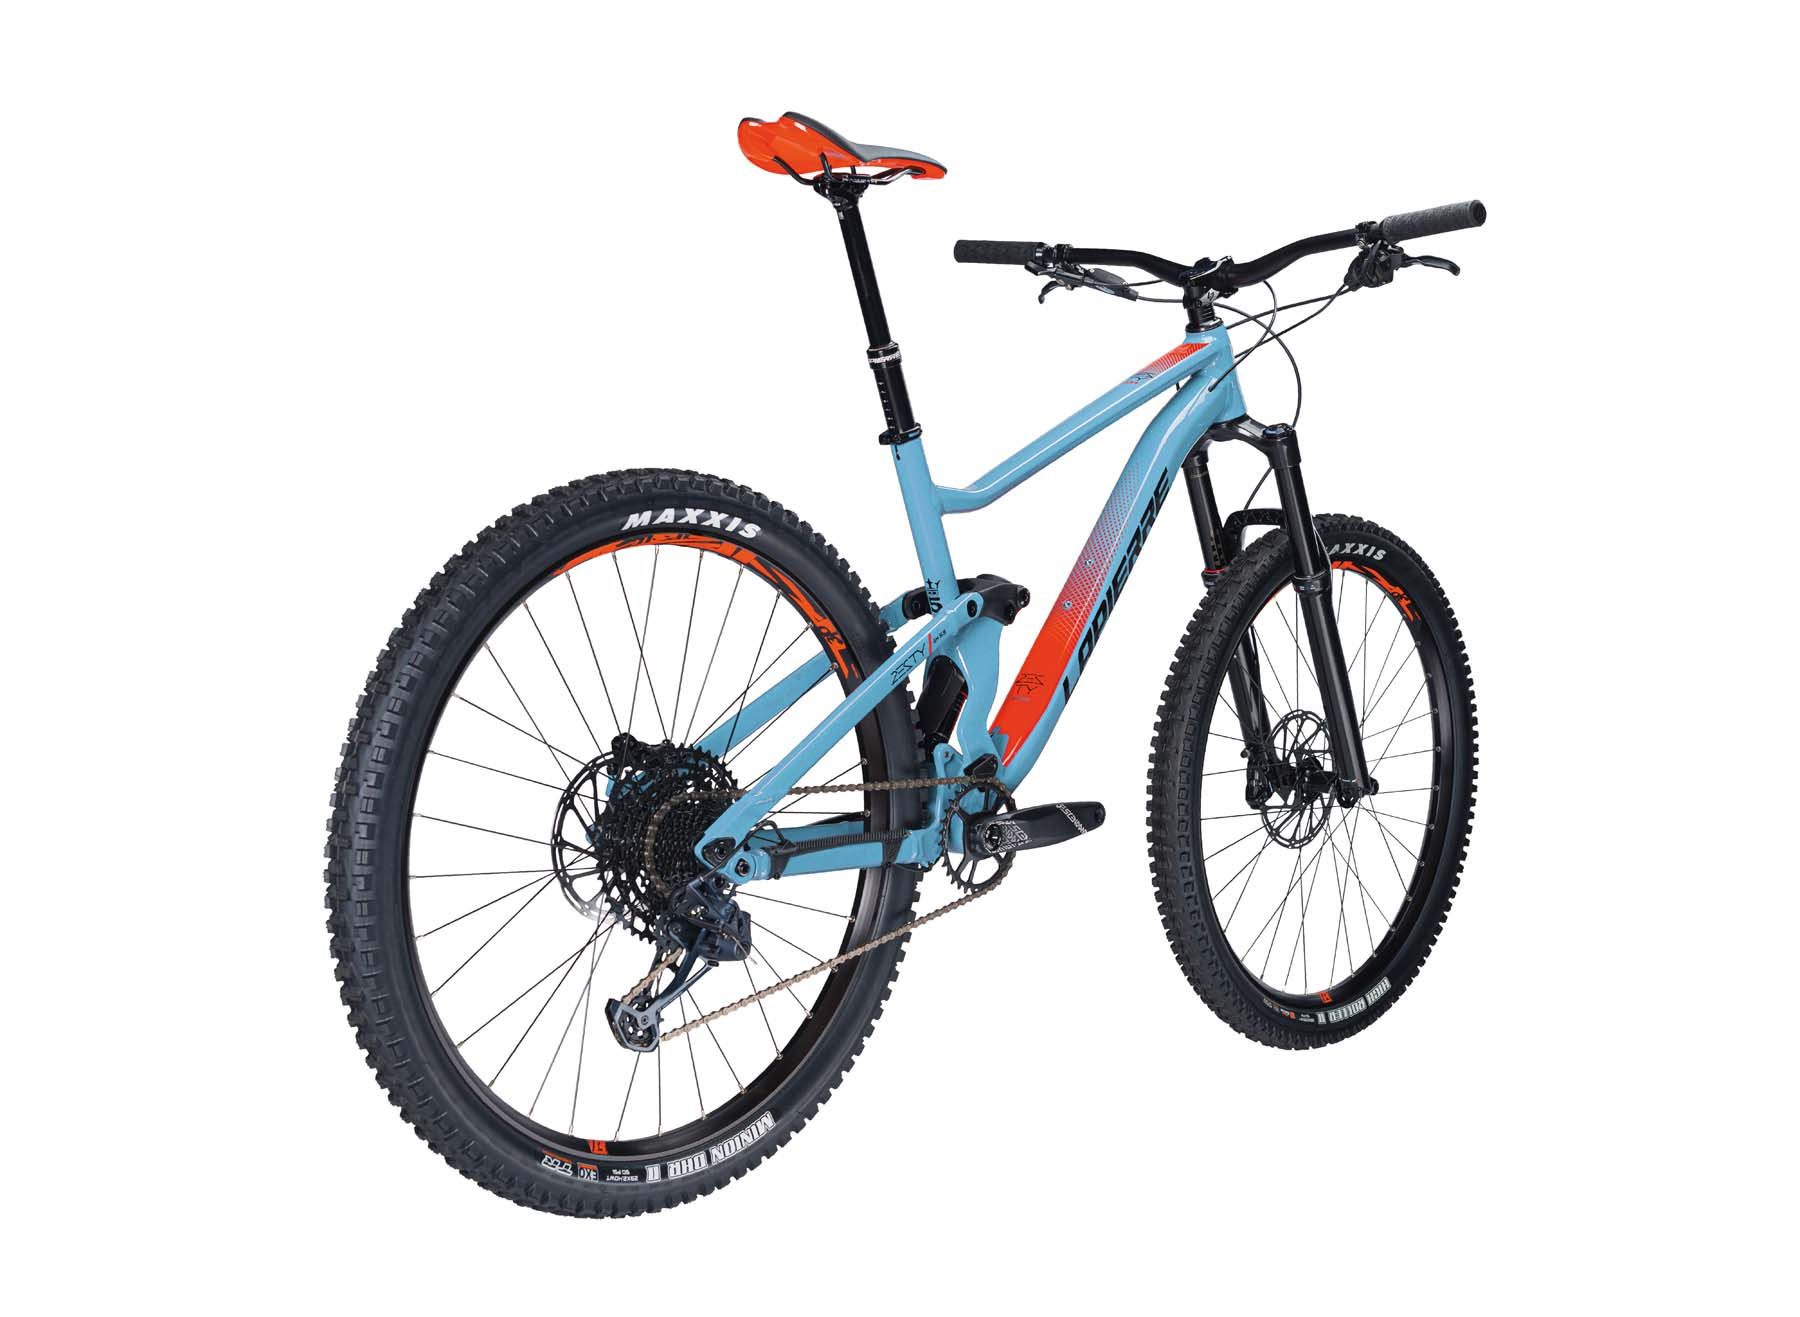 Lapierre Zesty AM 5.9 2021 All Mountain Bike 3